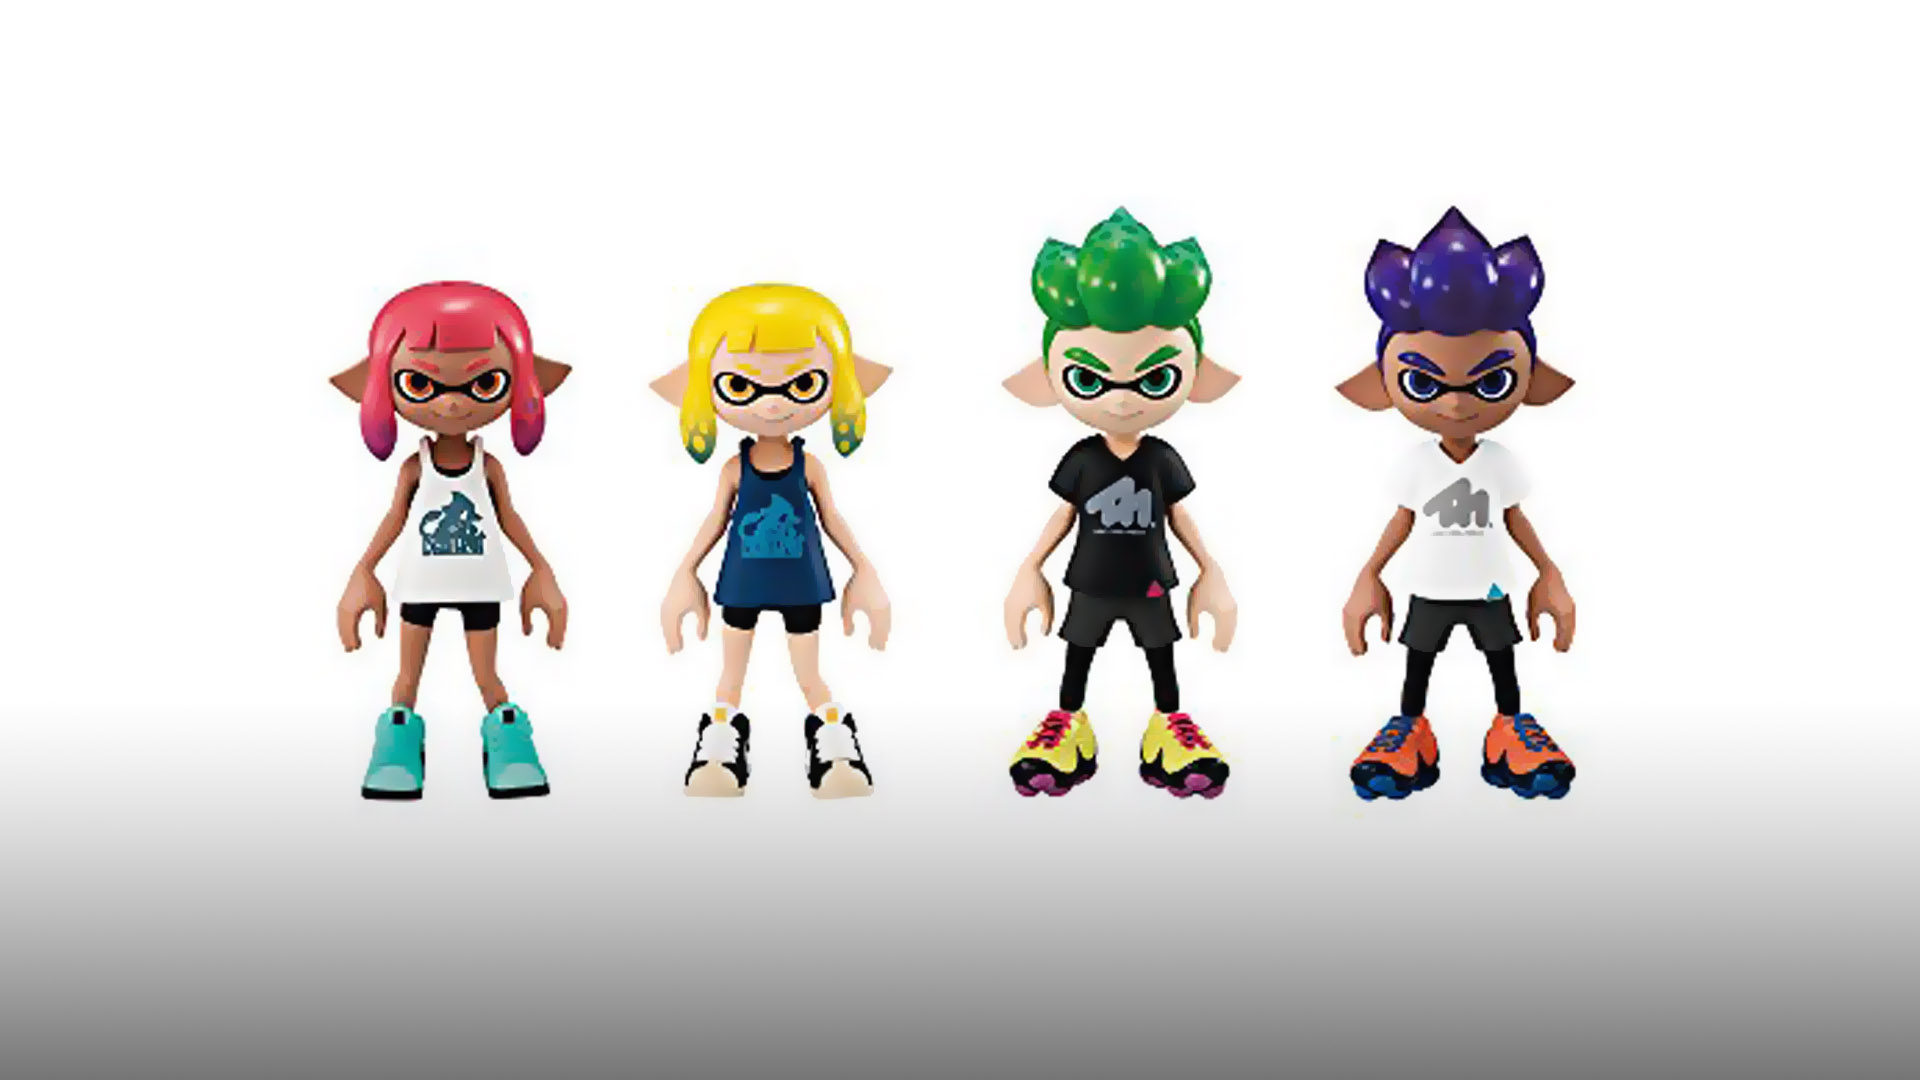 New Splatoon 2 Inkling Figures Help Your Collection Stay